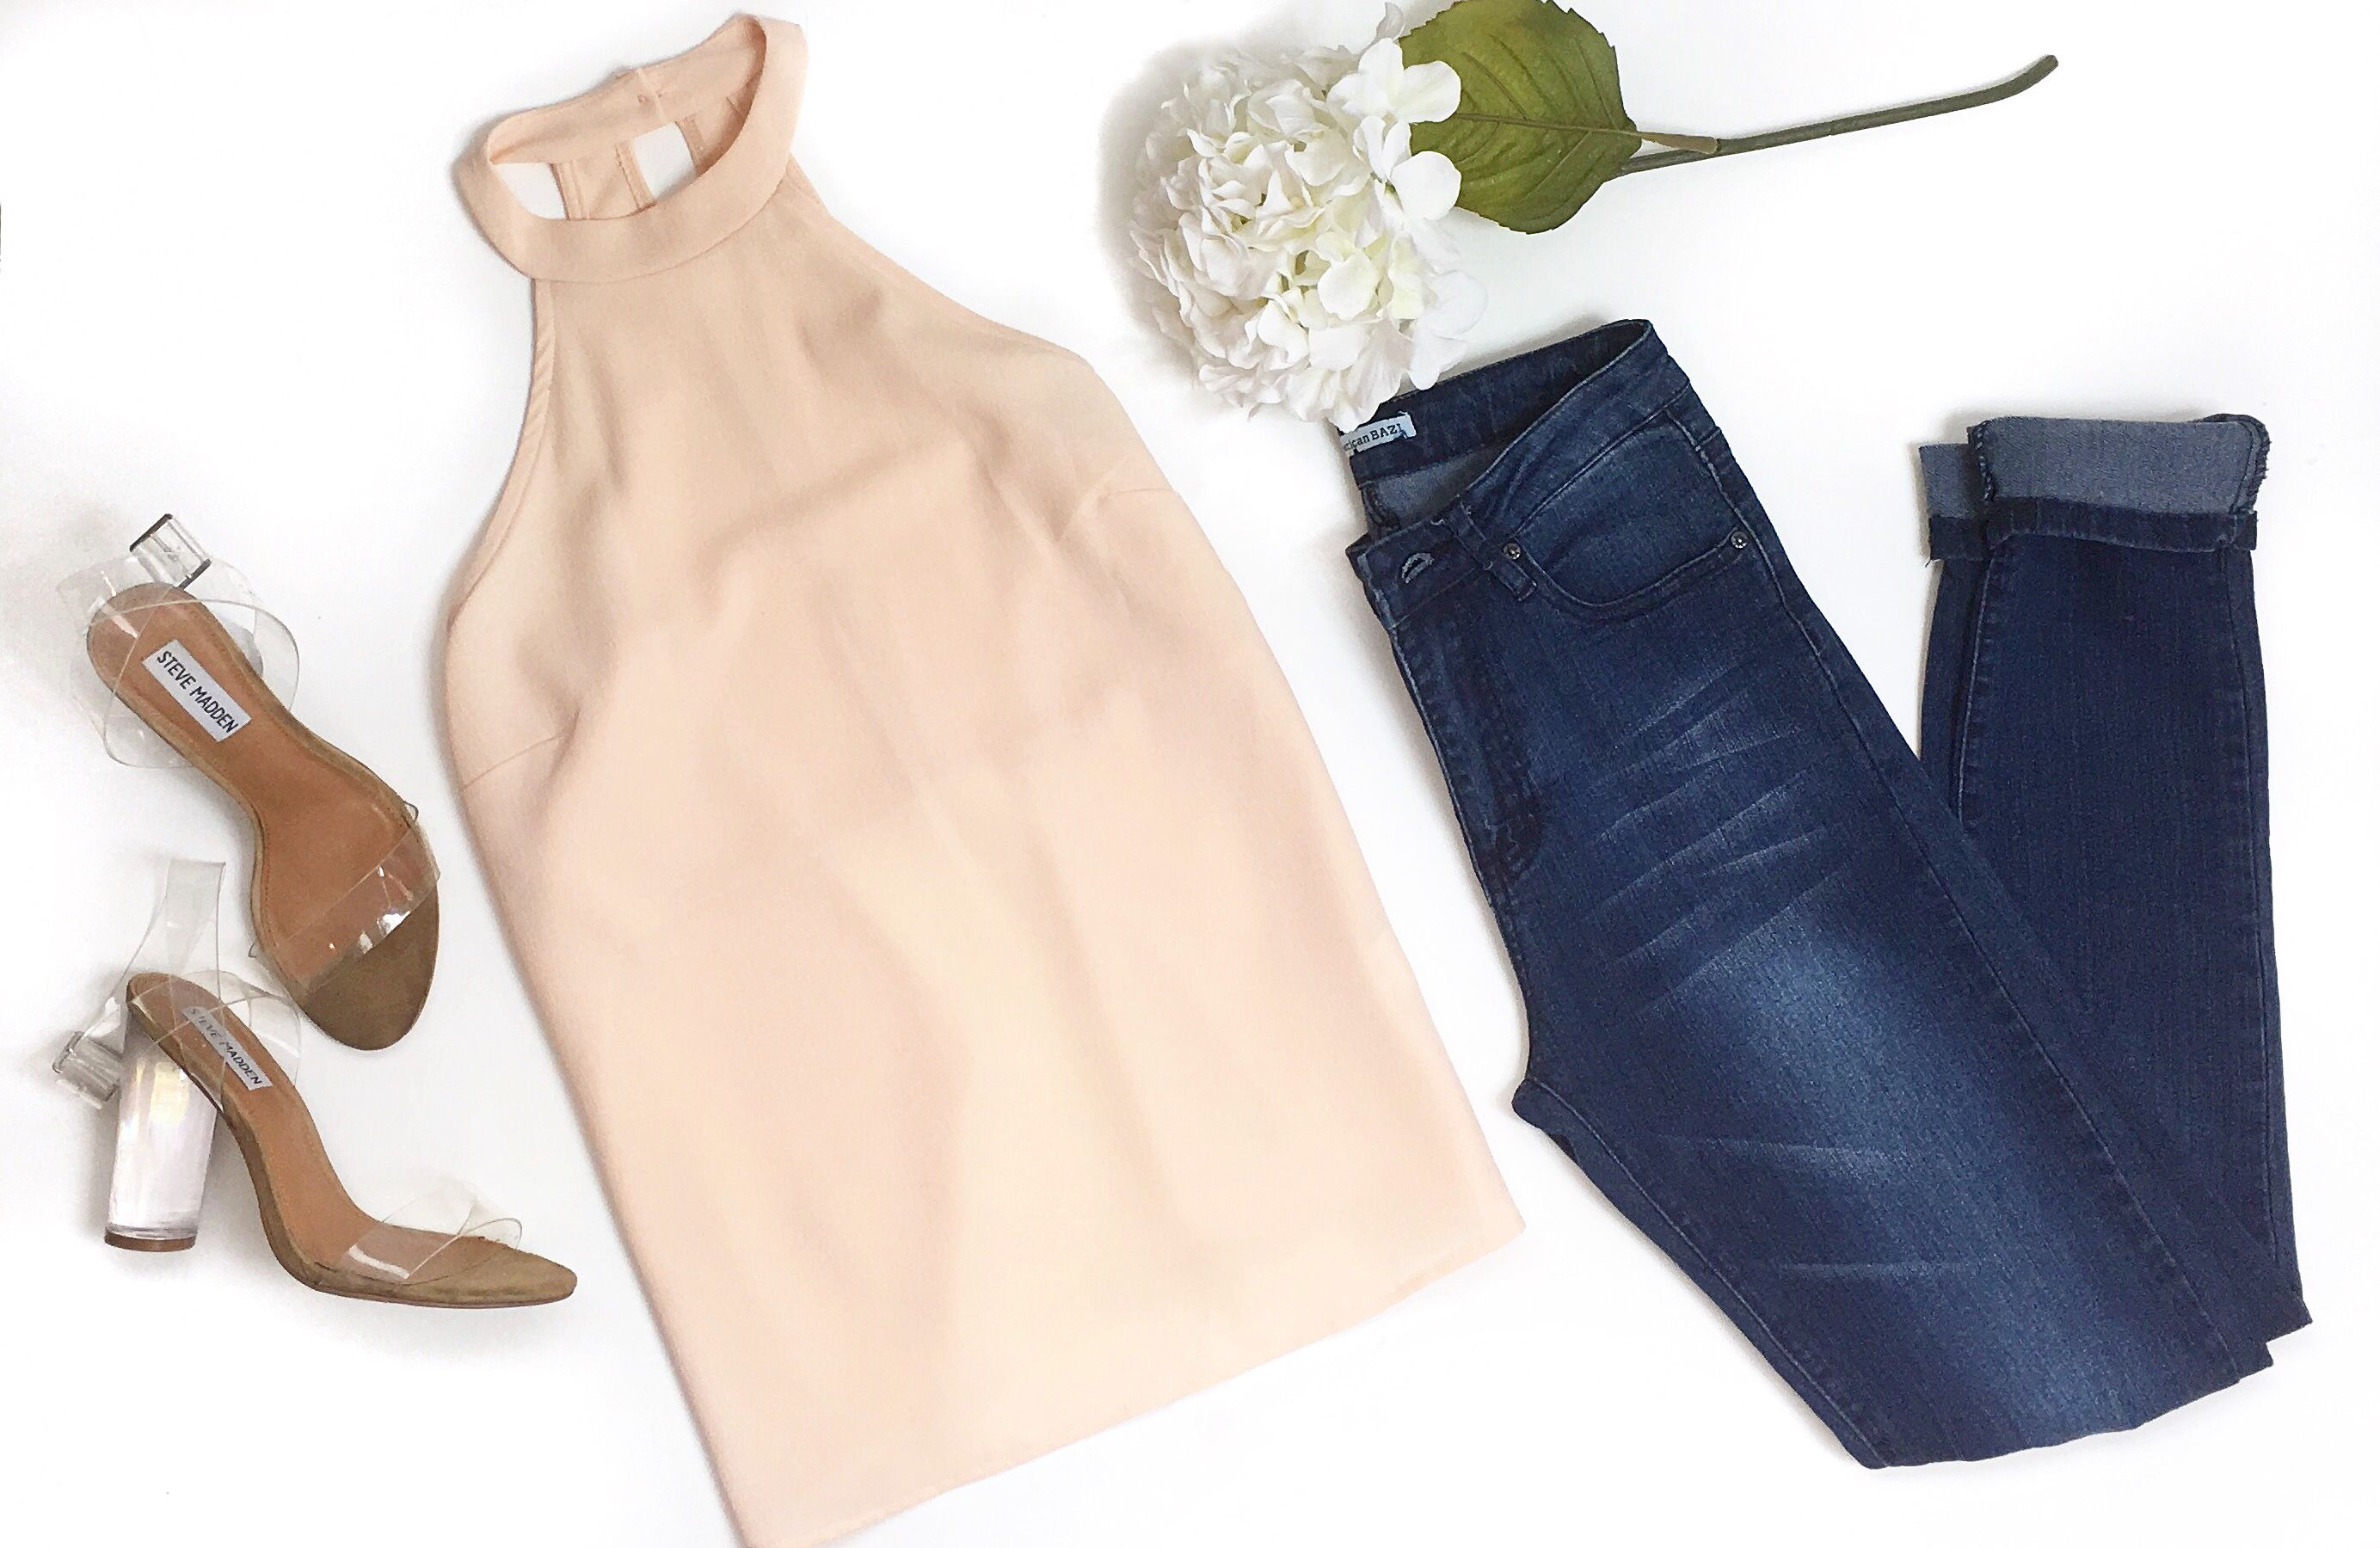 d90dbd86b3 Perfect Valentine's date night outfit💕